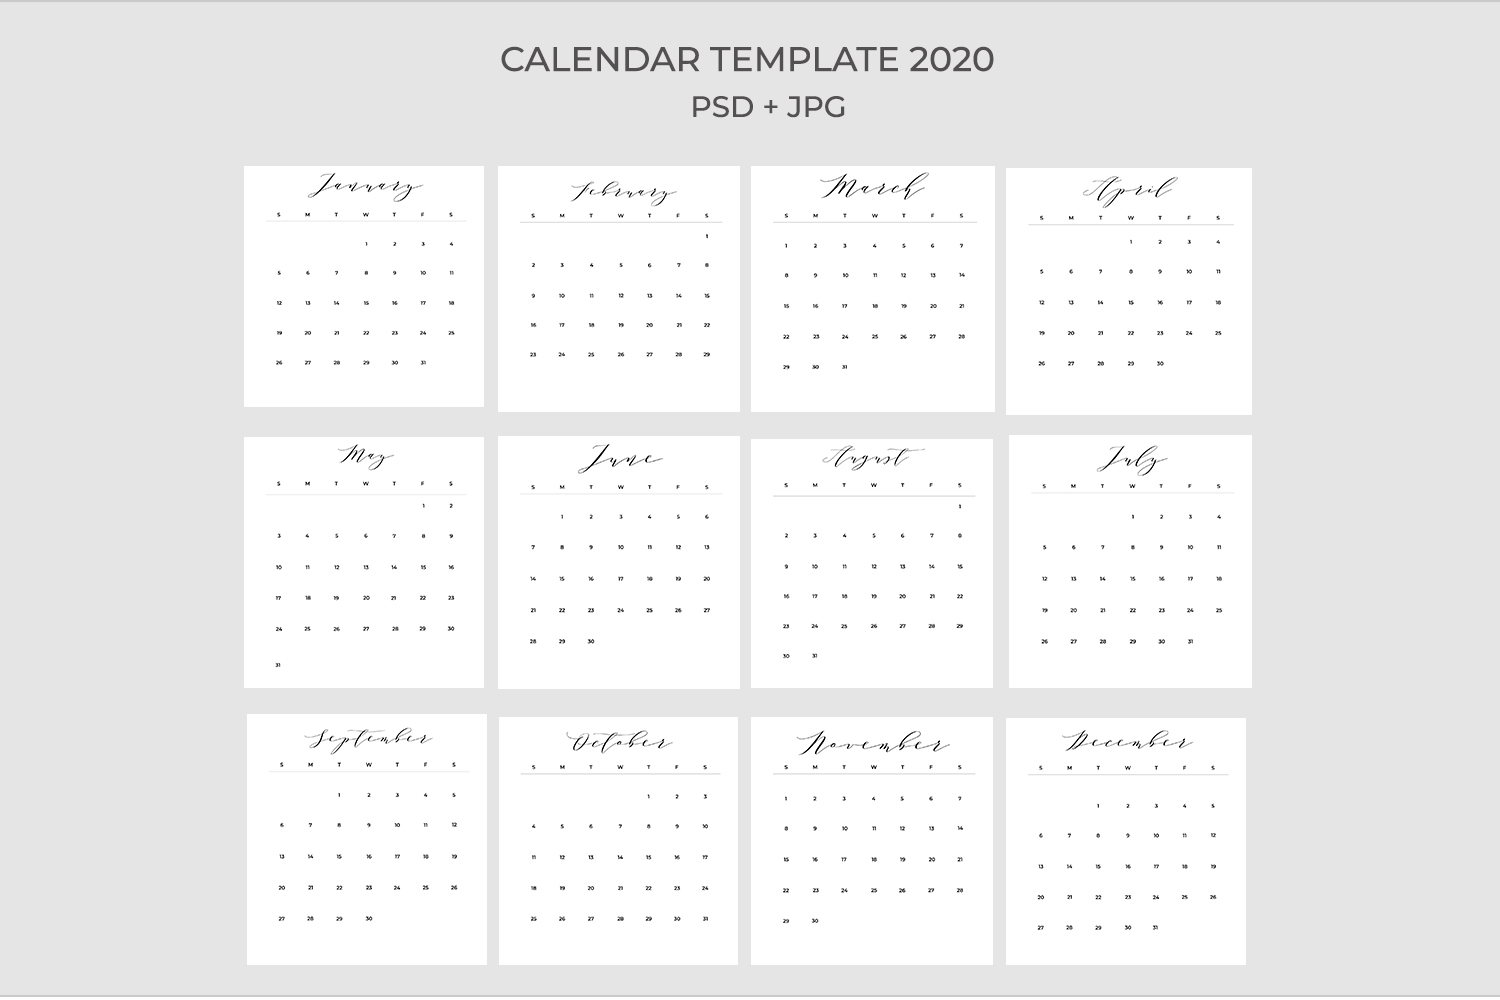 2020 Calendar Template Psdjpgpdf | Easy To Edit inside 2020 Calendar Psd File